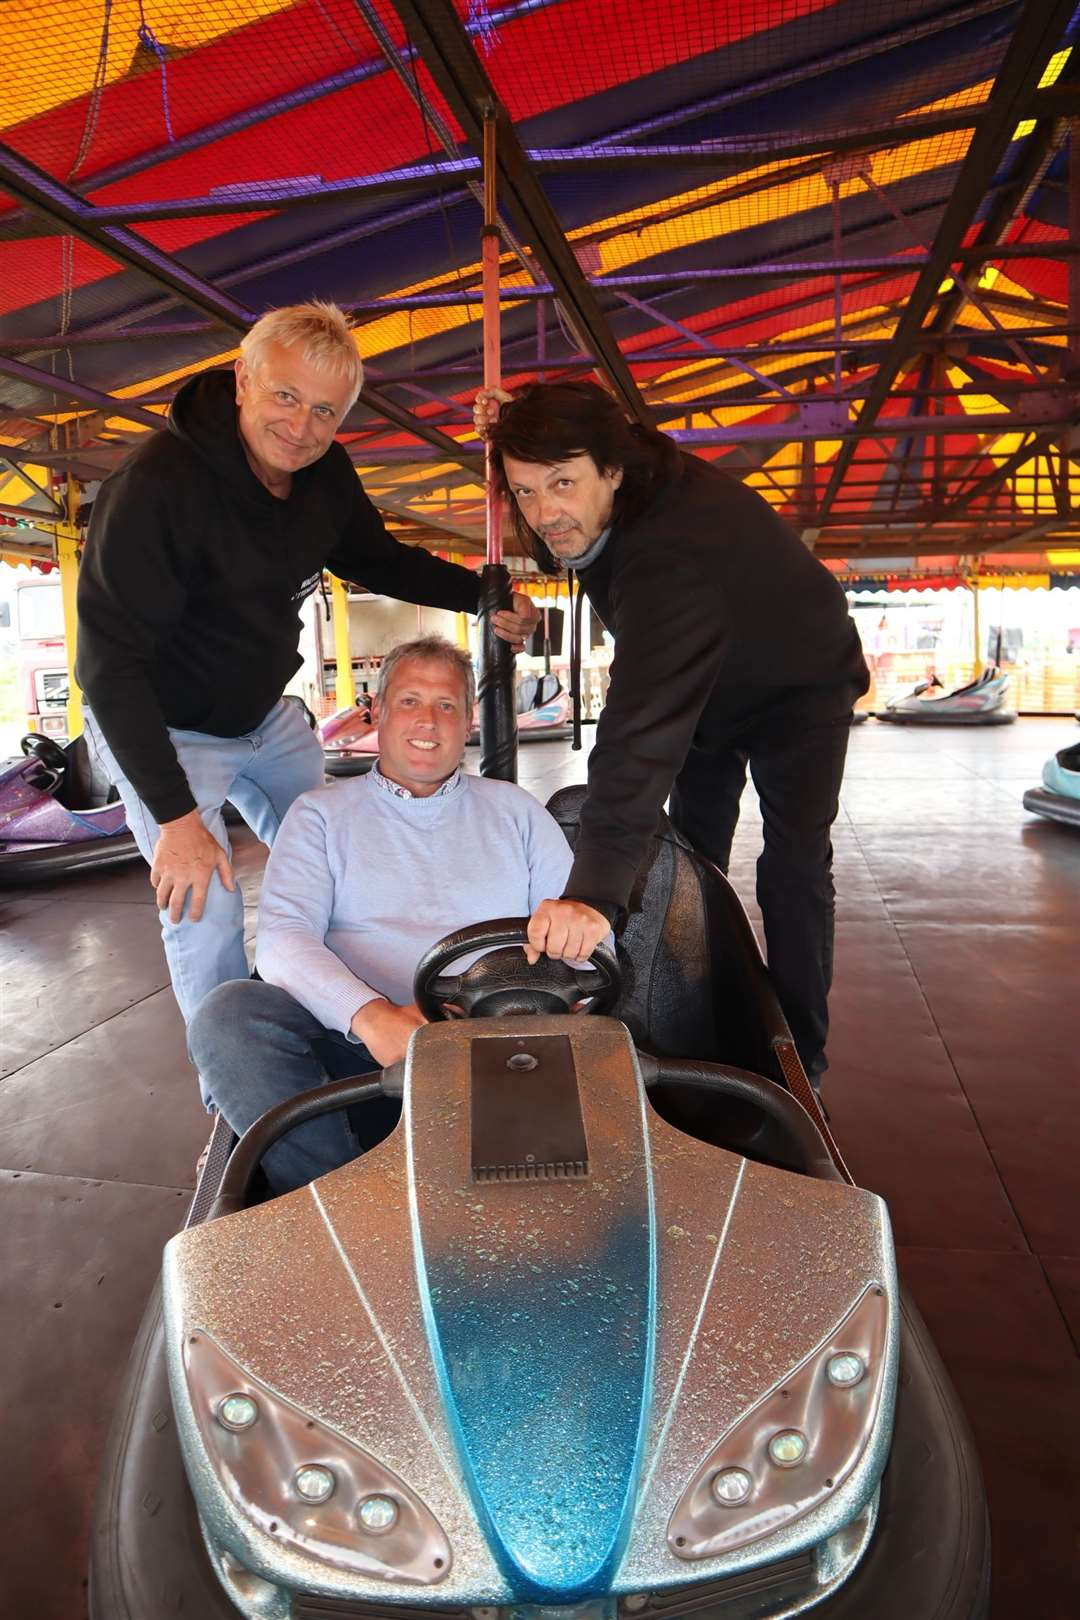 Cllrs Mike Baldock, left, and Richard Palmer give funfair boss Carlos Christian a hand on the dodgems at Smith's funfair at Barton's Point, Sheerness